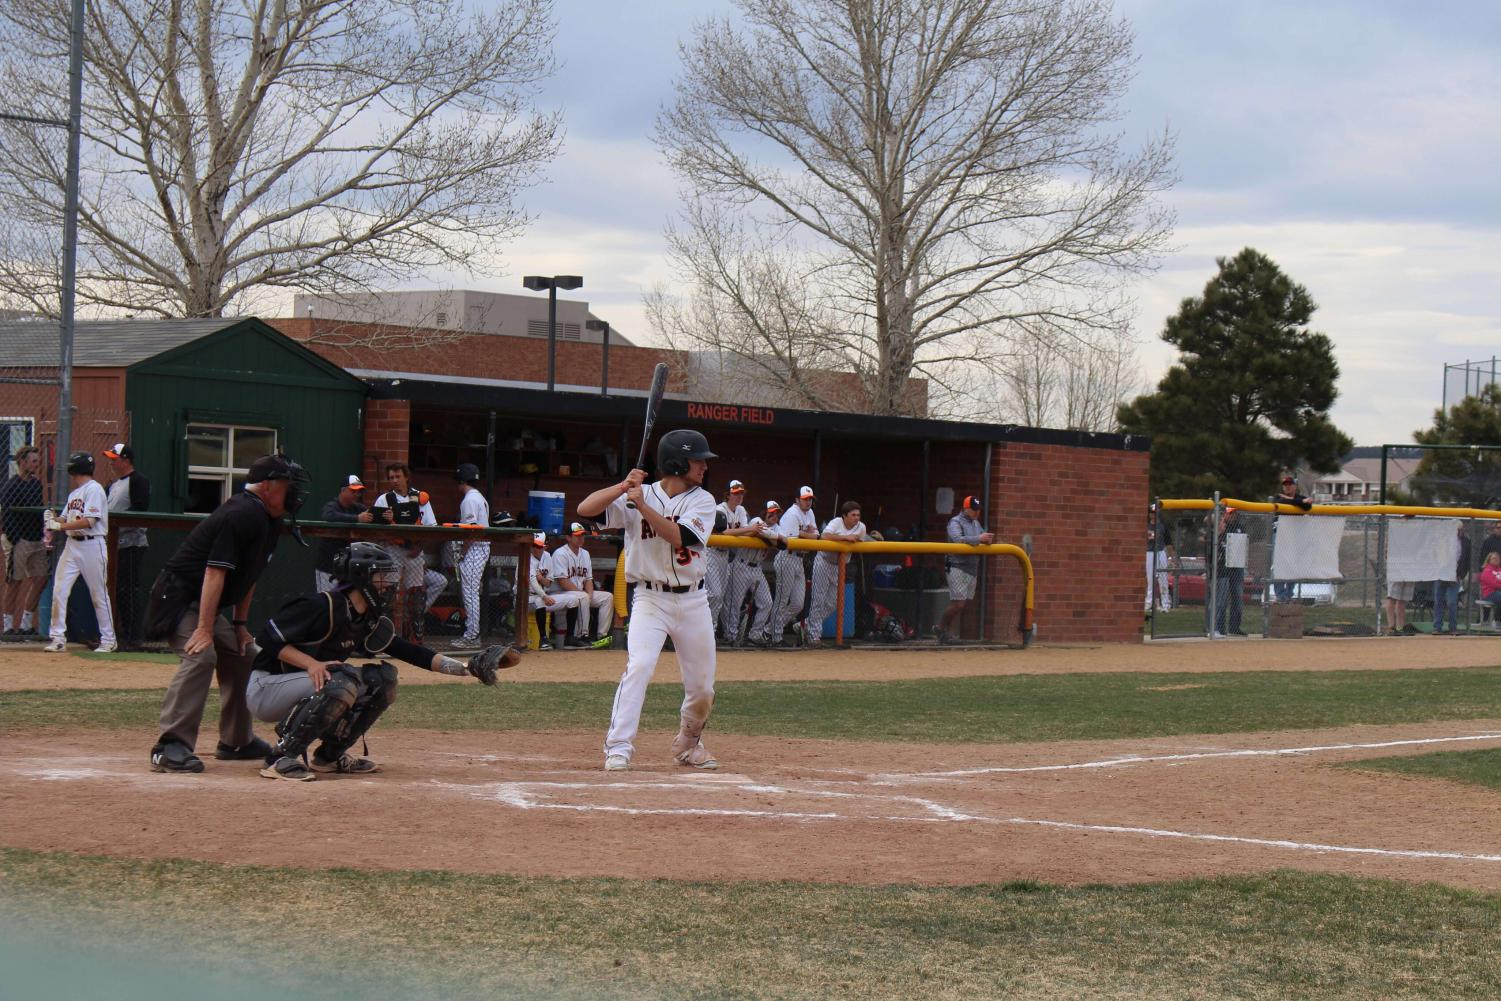 Johnathan Behm is getting ready to hit. He is first in his team's batting line-up.